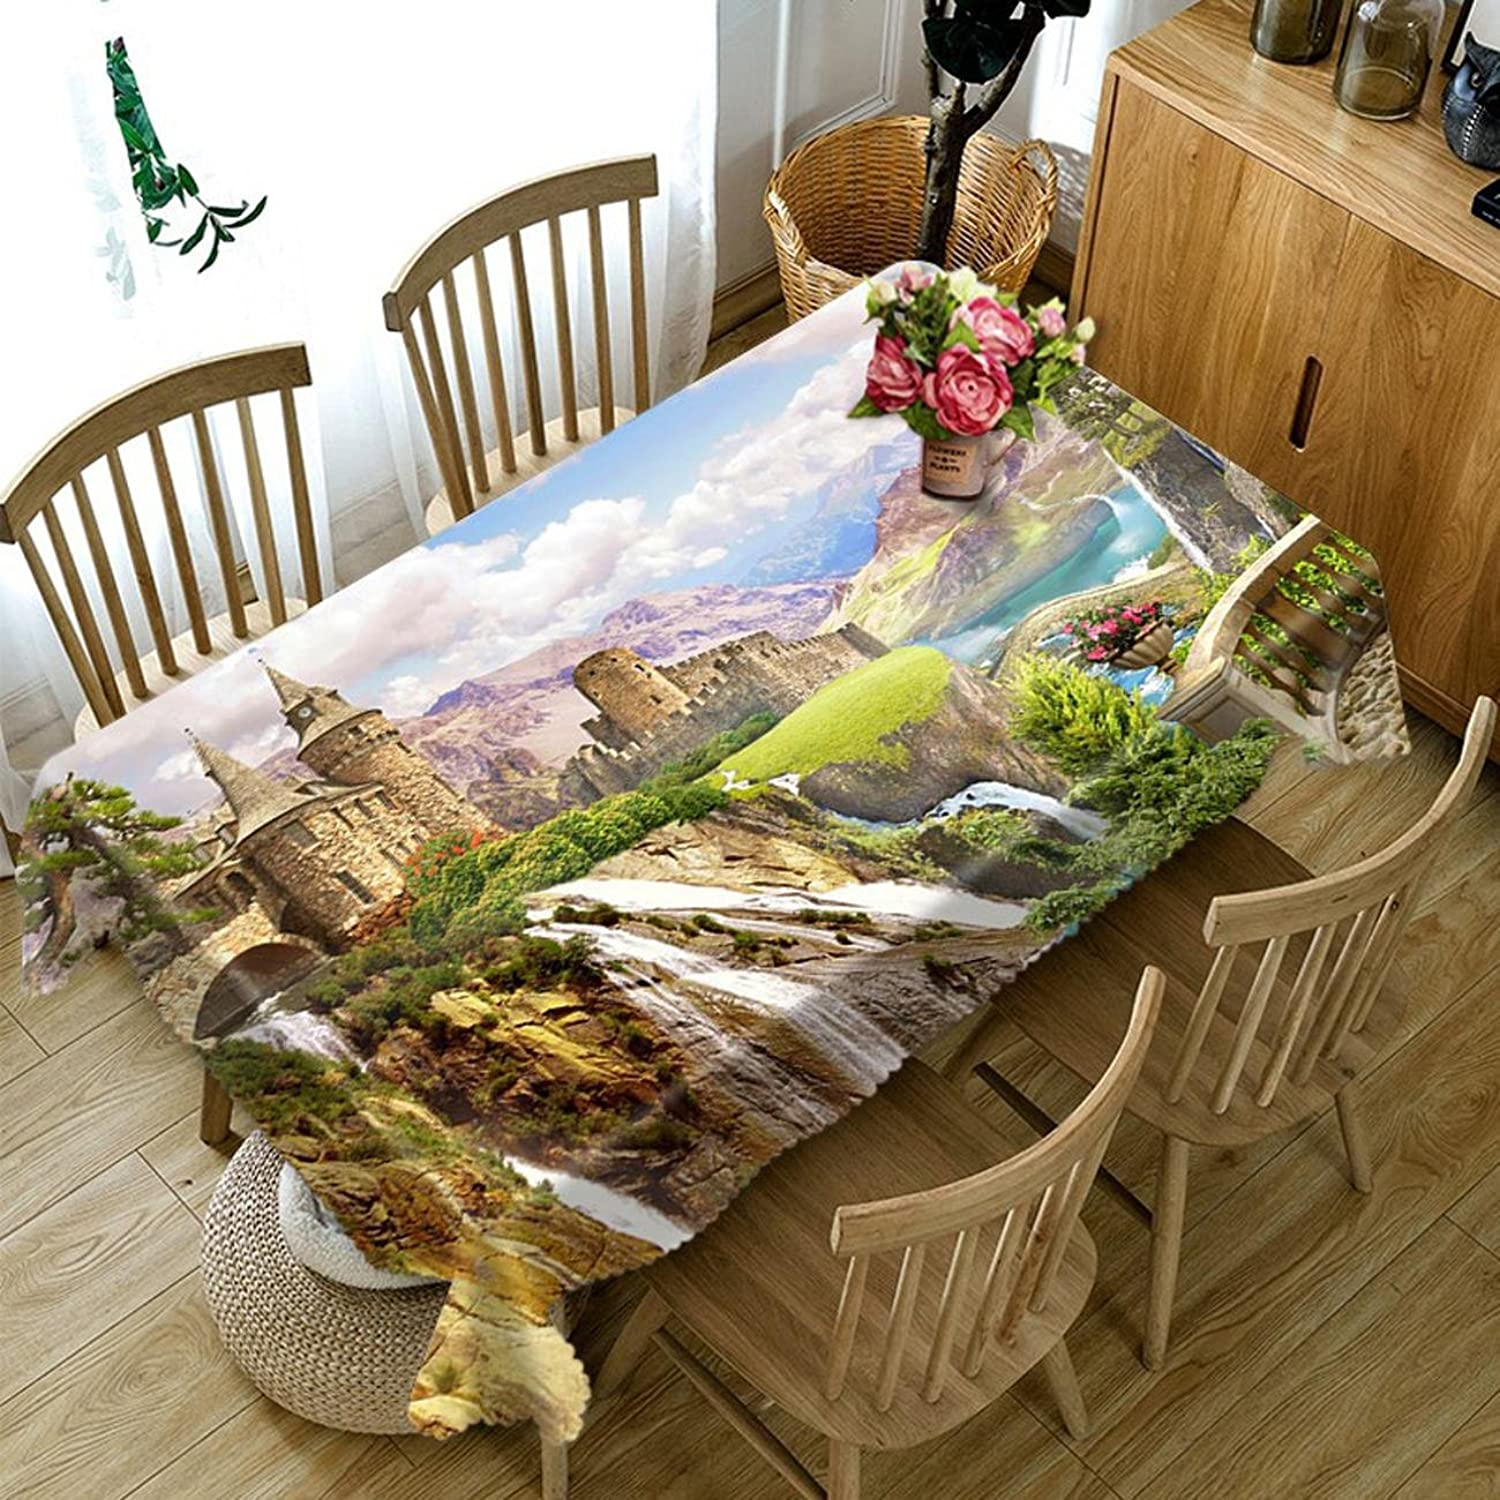 HUANZI HZ Tablecloth 3DGreat Rivers And Mountains Digital Printing Dustproof Dinner Desktop Top Cover Rectangular Tablecloth, square 178cmx178cm